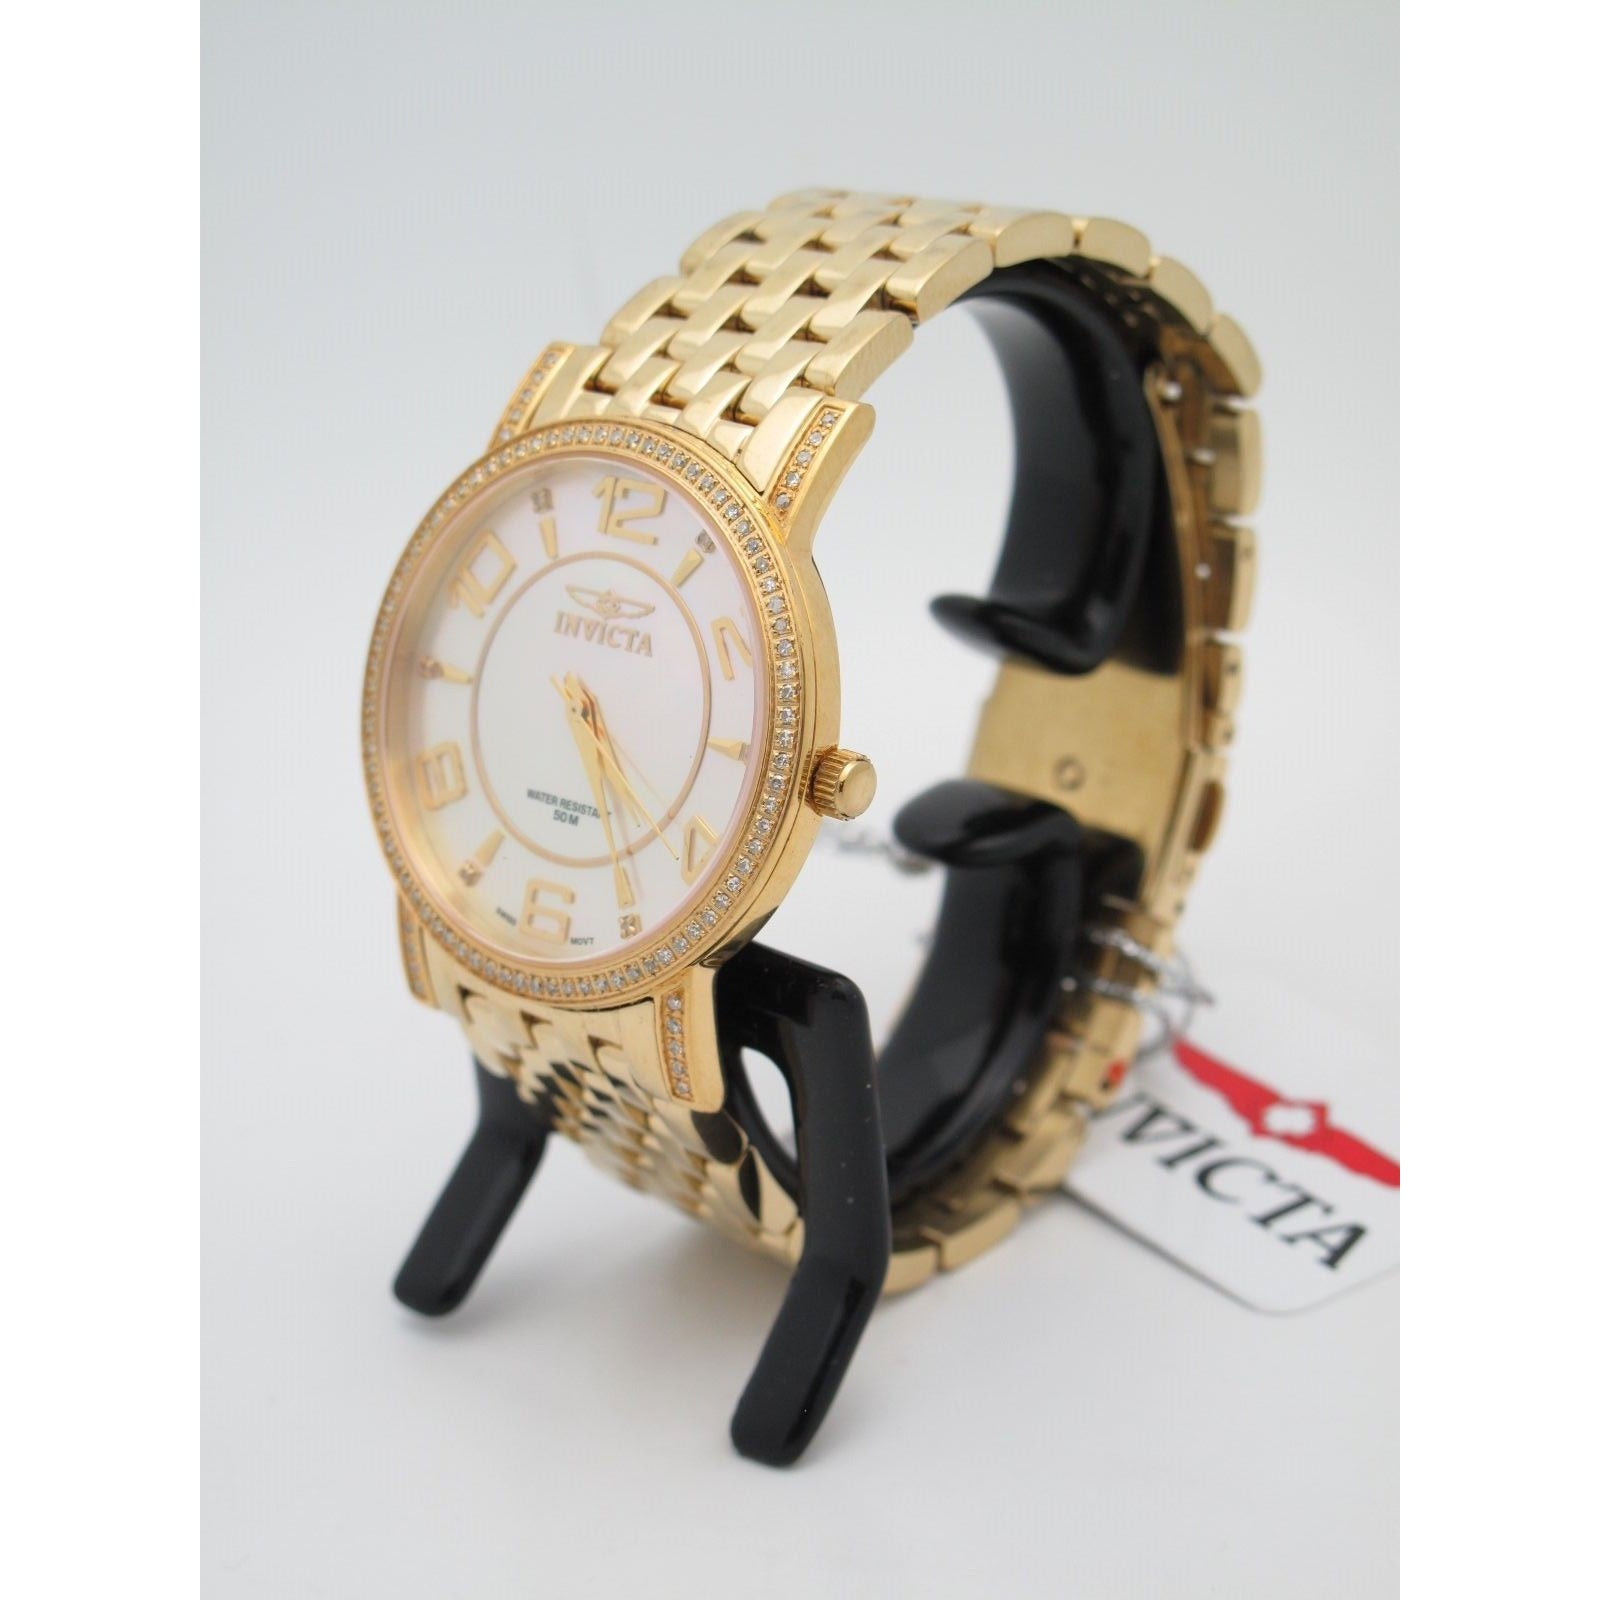 Invicta Ladies Gold-Tone Stainless Steel Mother Of Pearl Dial Watch 3609